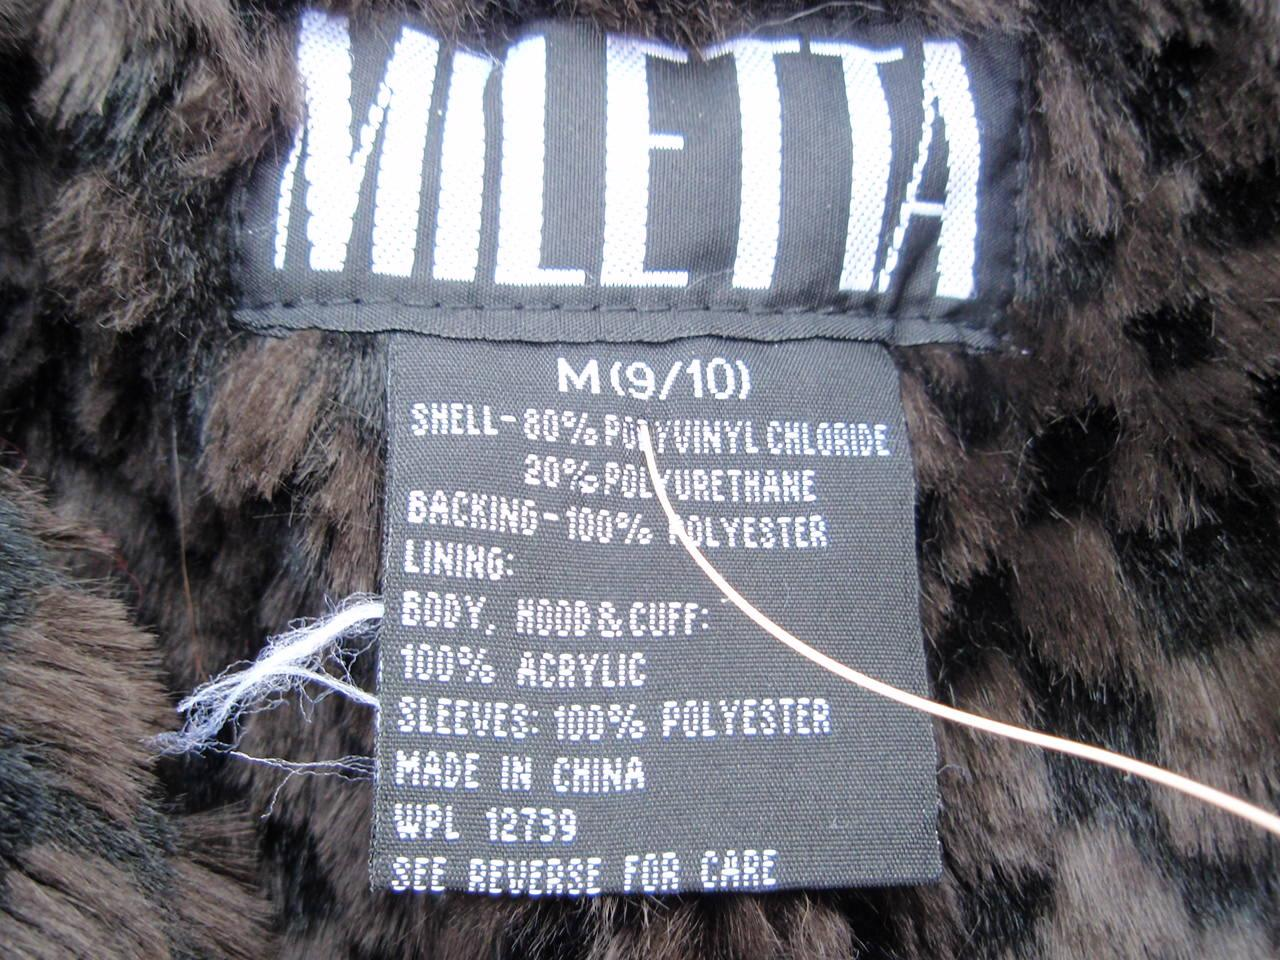 Recalled Miletta jacket label